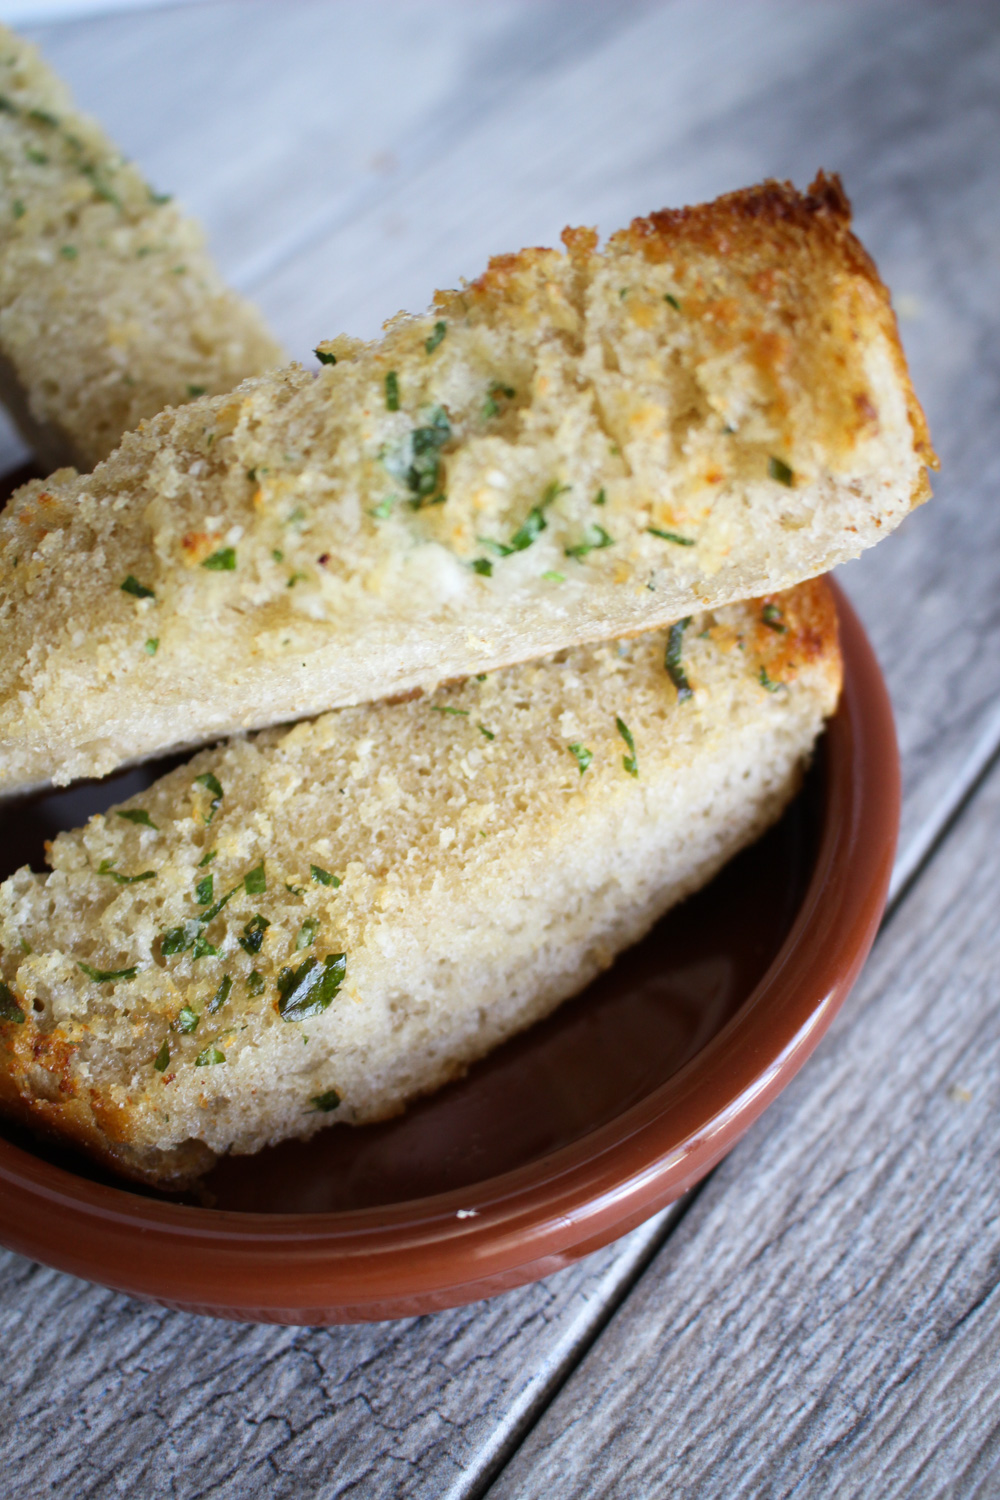 How To Make Garlic Bread 2 Ways